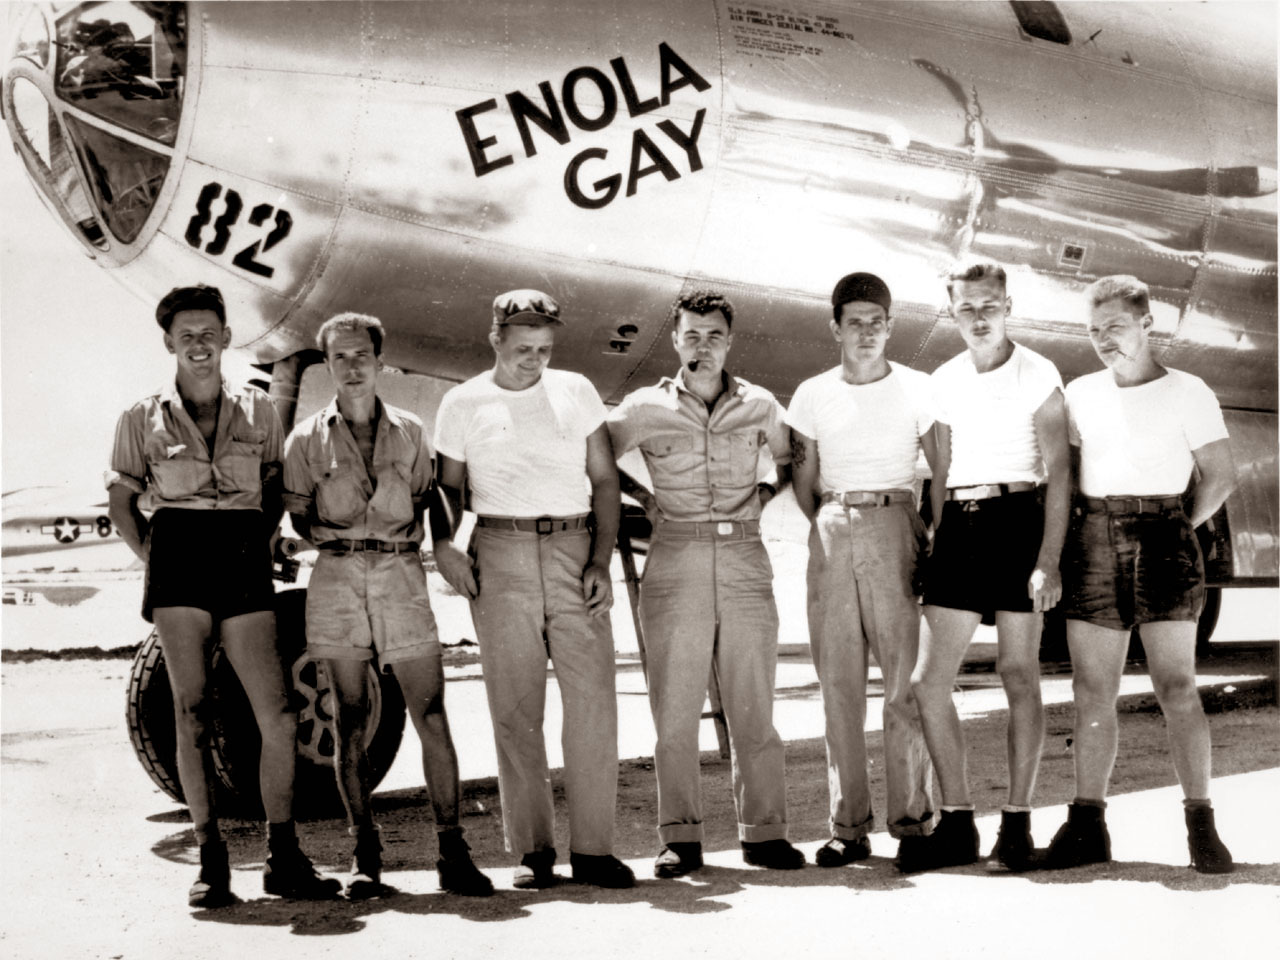 The Manhattan Project S Enola Gay Hangar 45